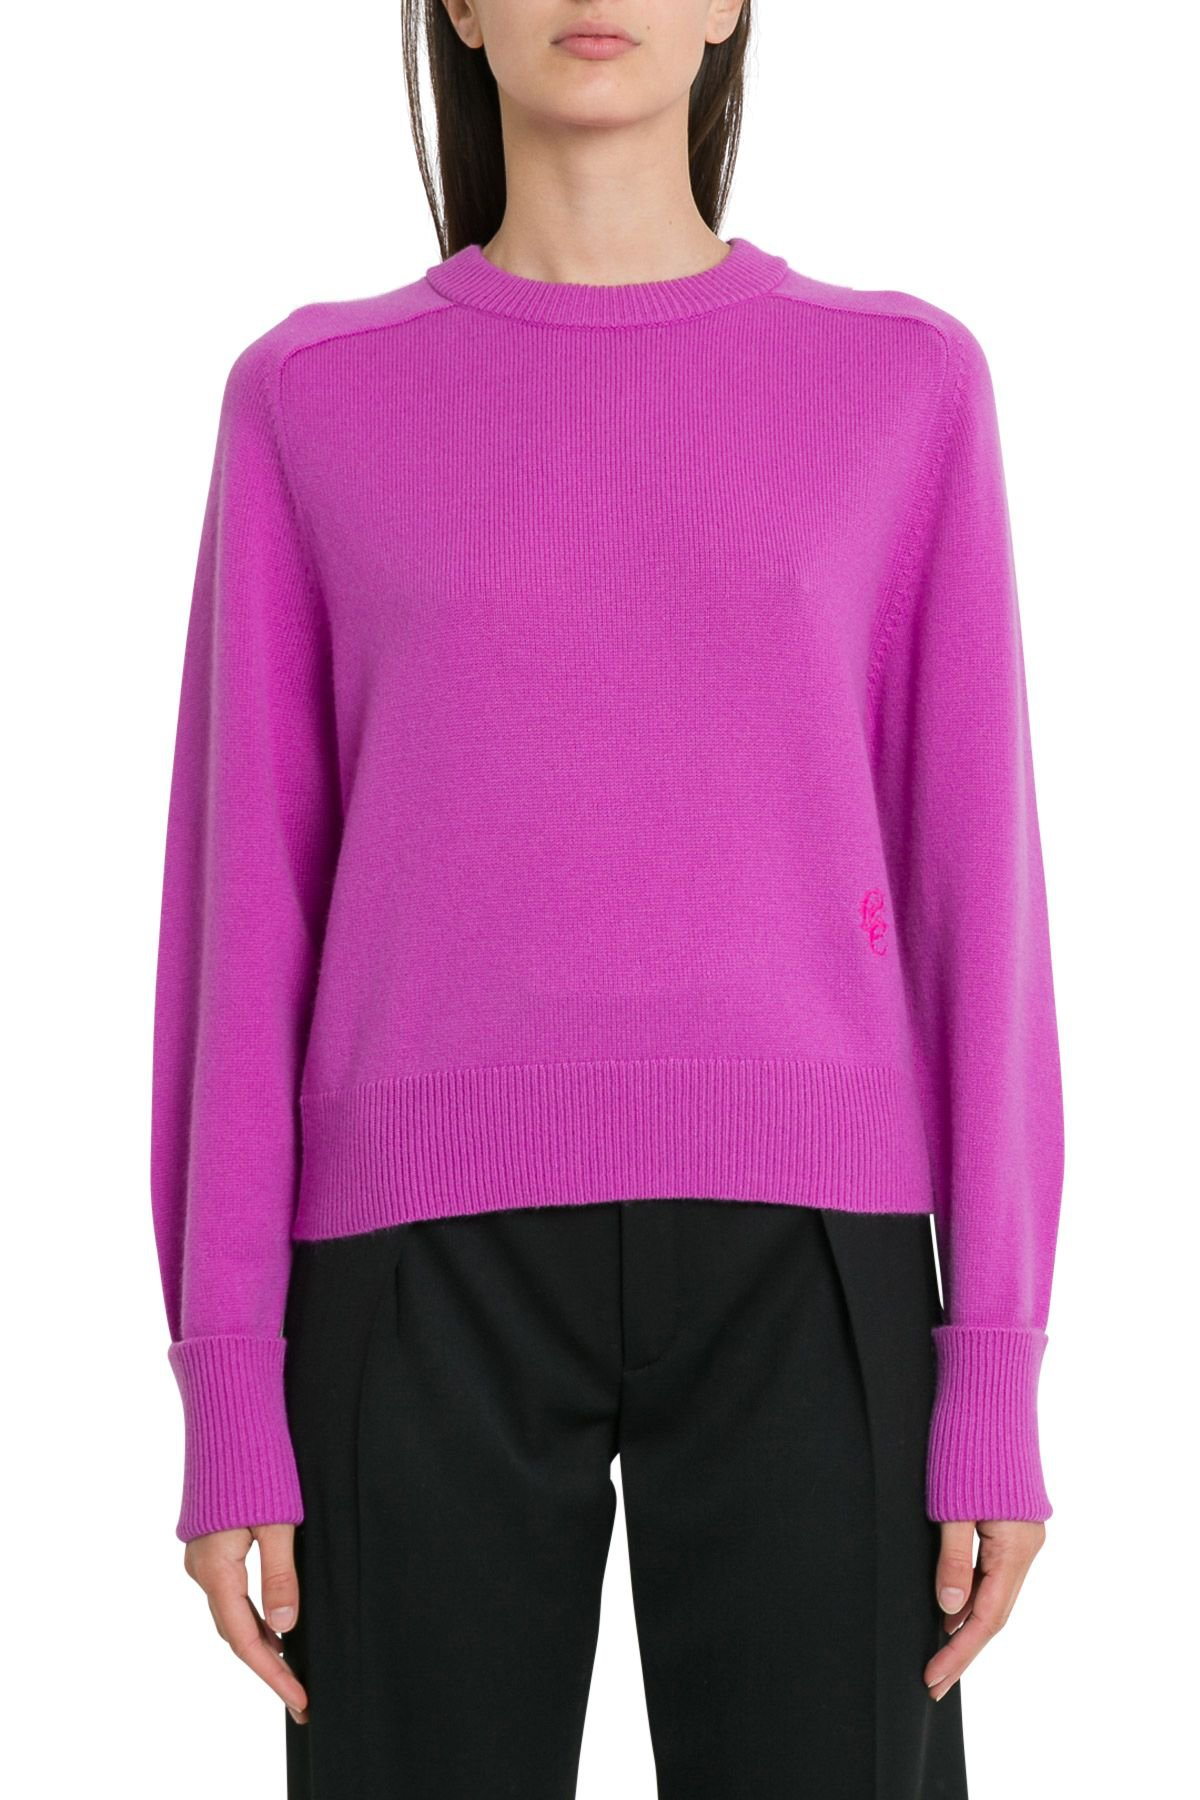 Chloé Cashmere Blend Knit Sweater